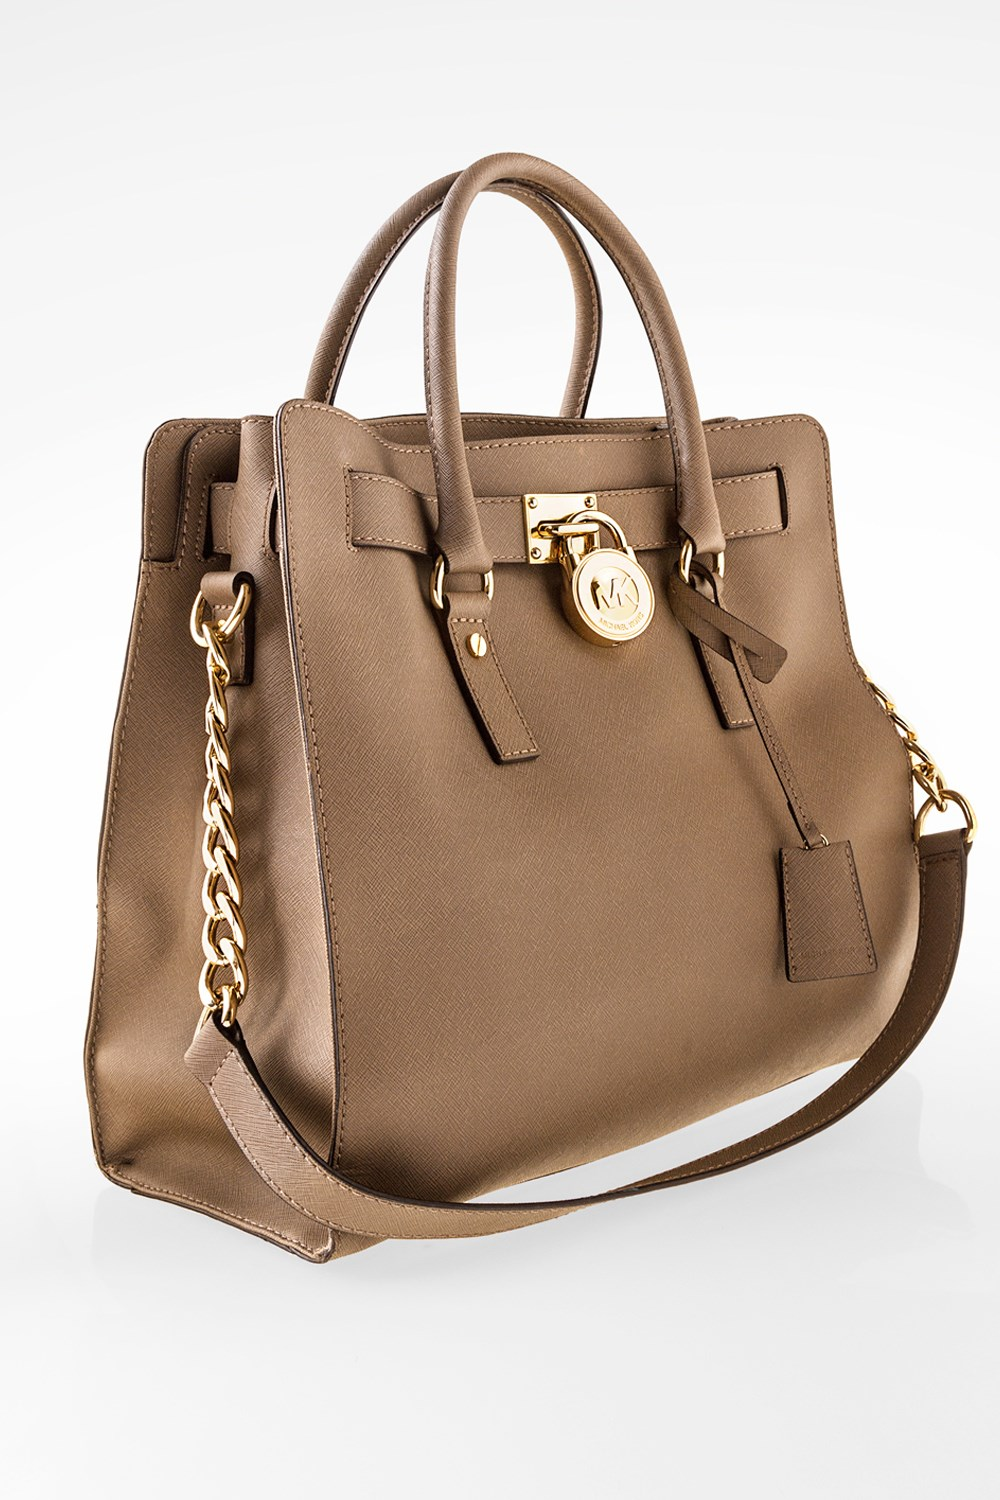 619fcf4ac00a Hamilton Taupe Saffiano Large Leather Tote Bag, Shoulder Bags, Buy Handbags,  Bags, Starbags Products, Starbags.gr